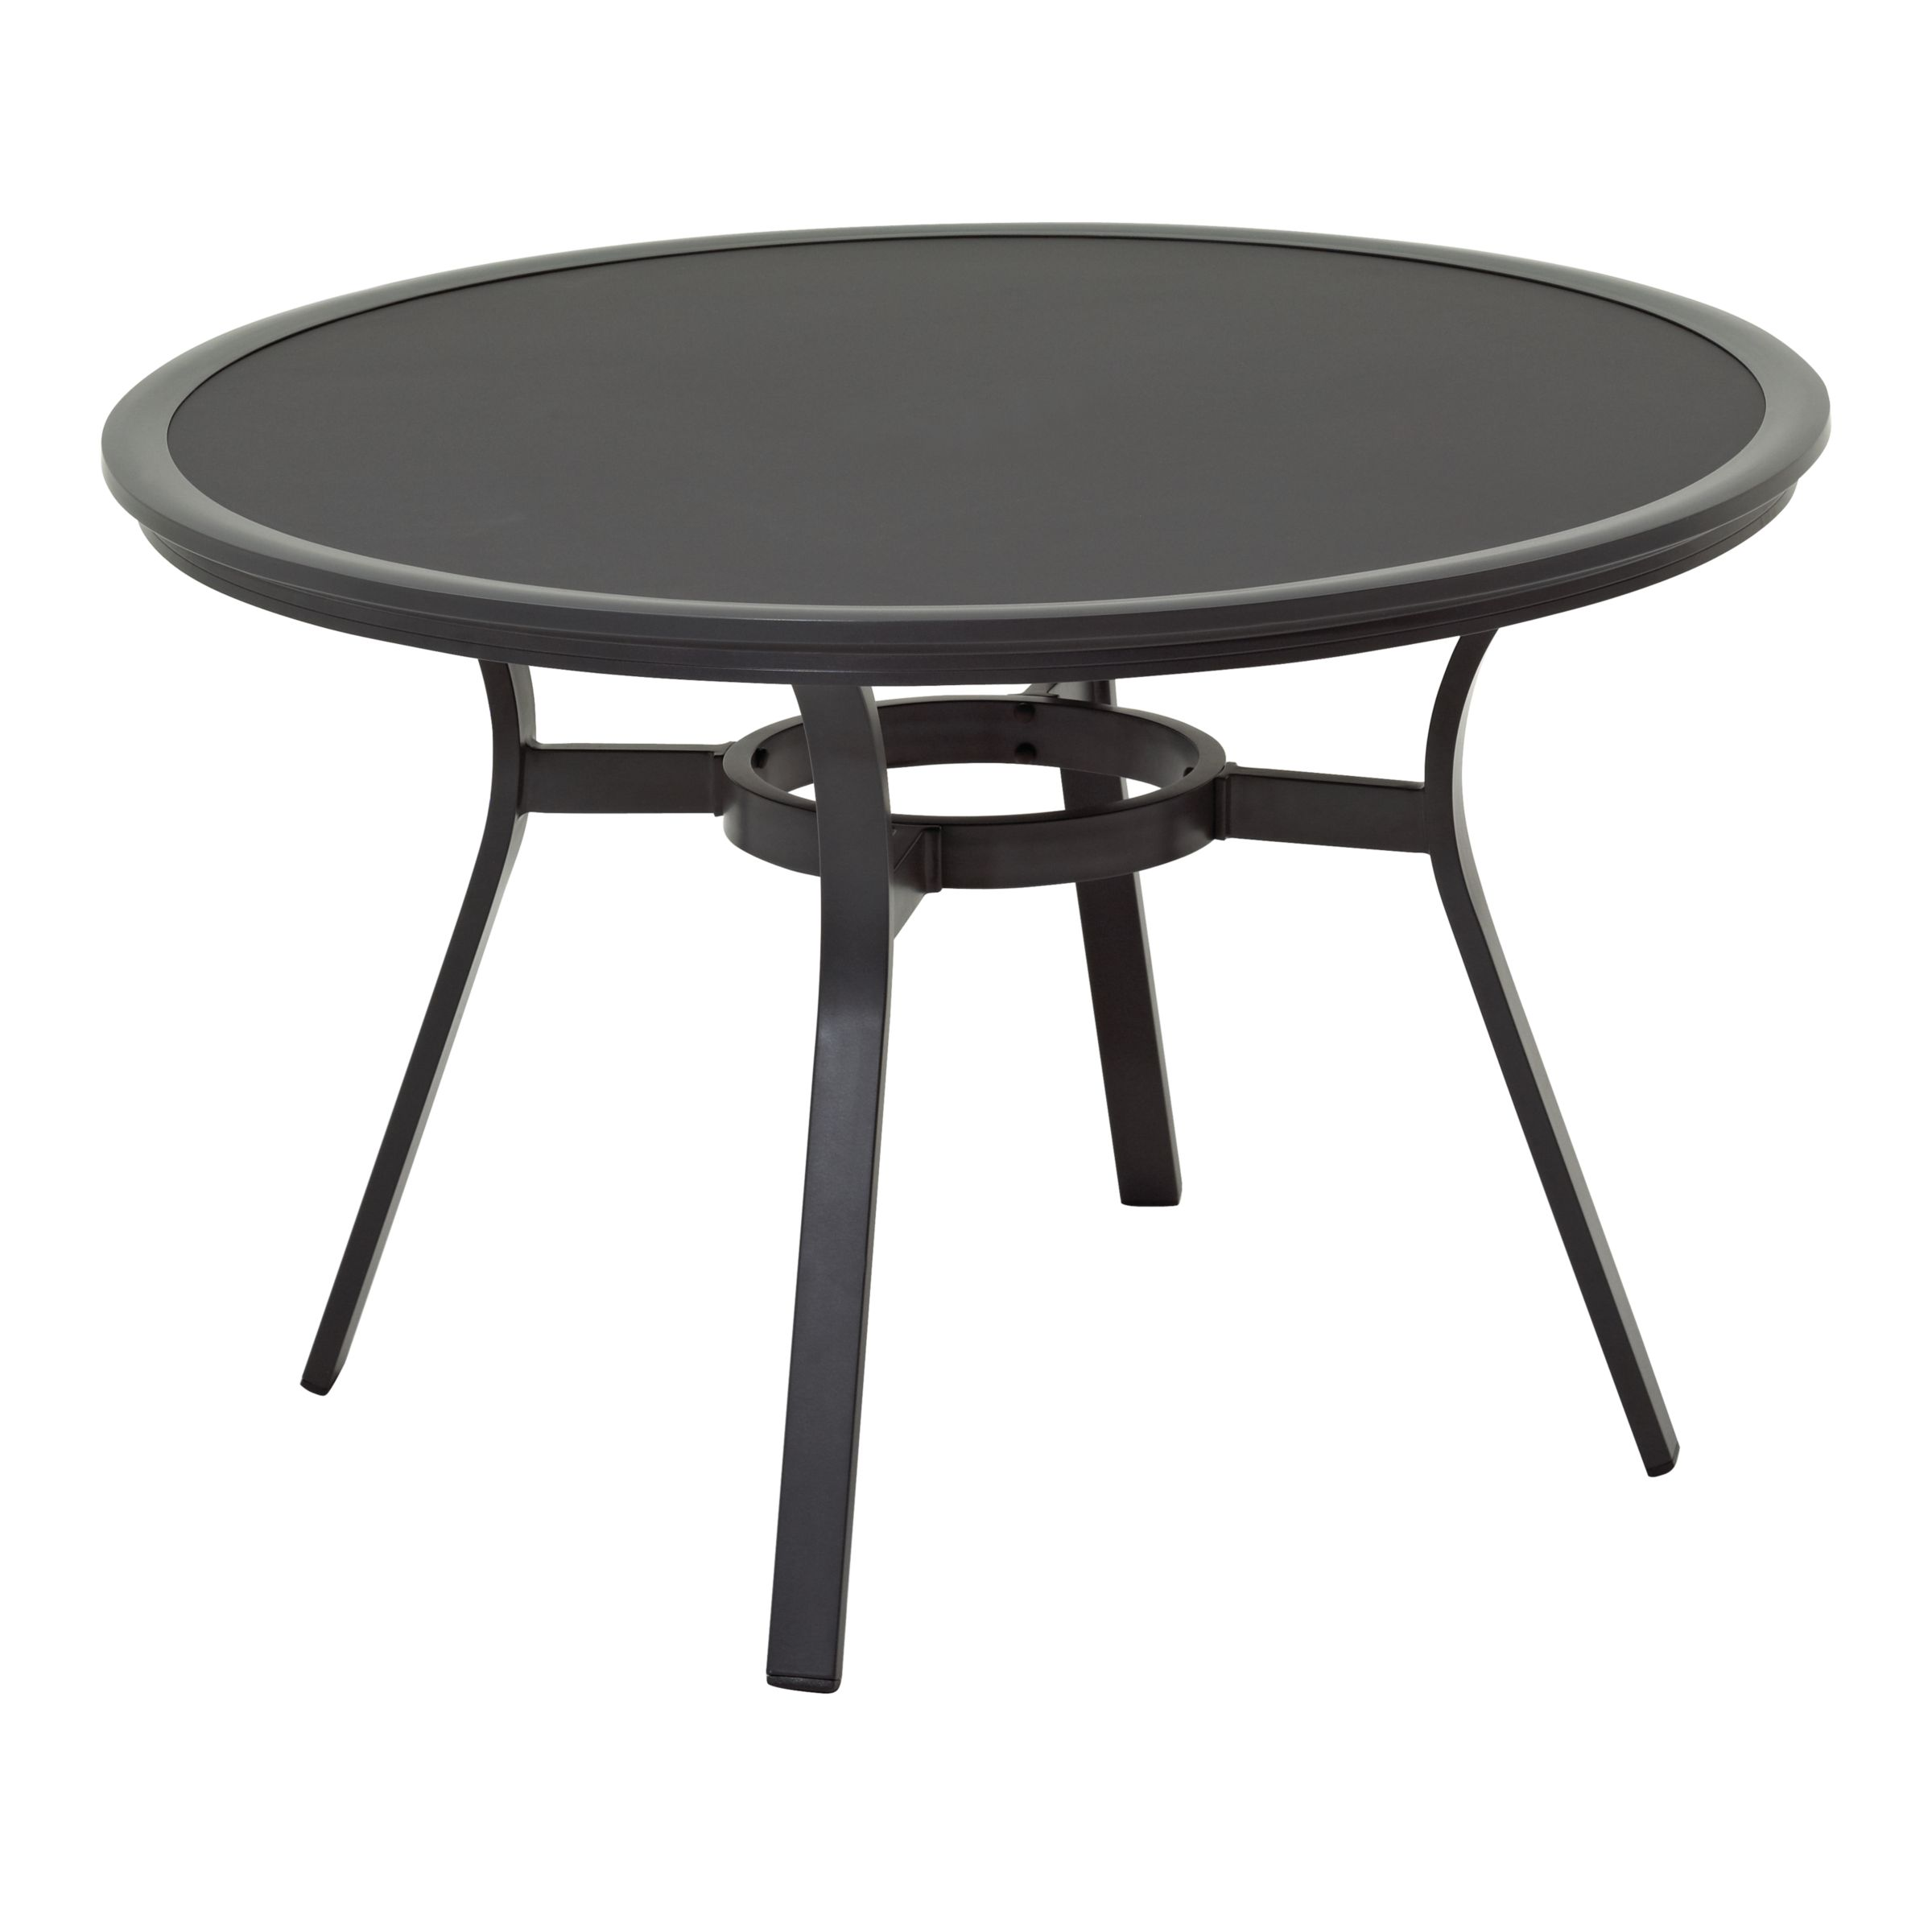 Round Glass Table Top Shop For Cheap Tables And Save Online